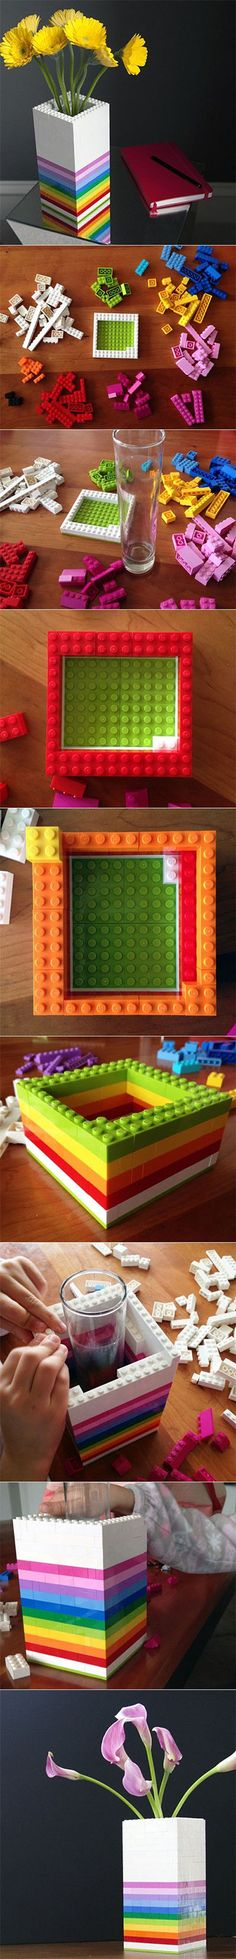 DIY Lego Vase | DIY Crafts Tutorials